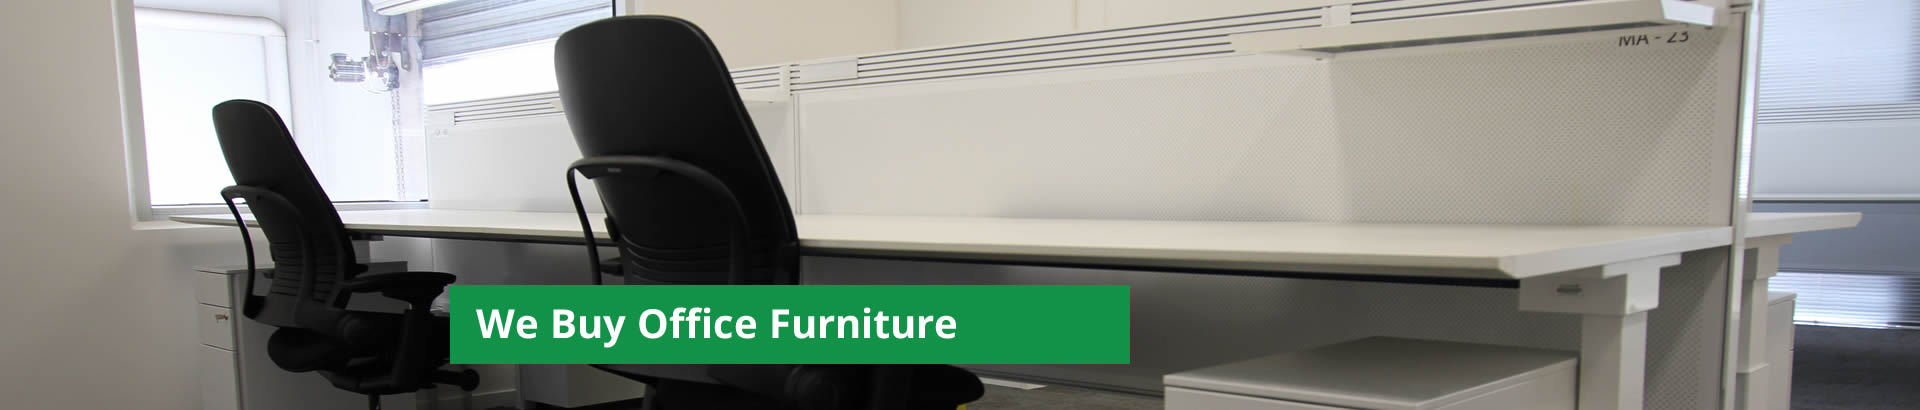 We Buy Office Furniture - click here